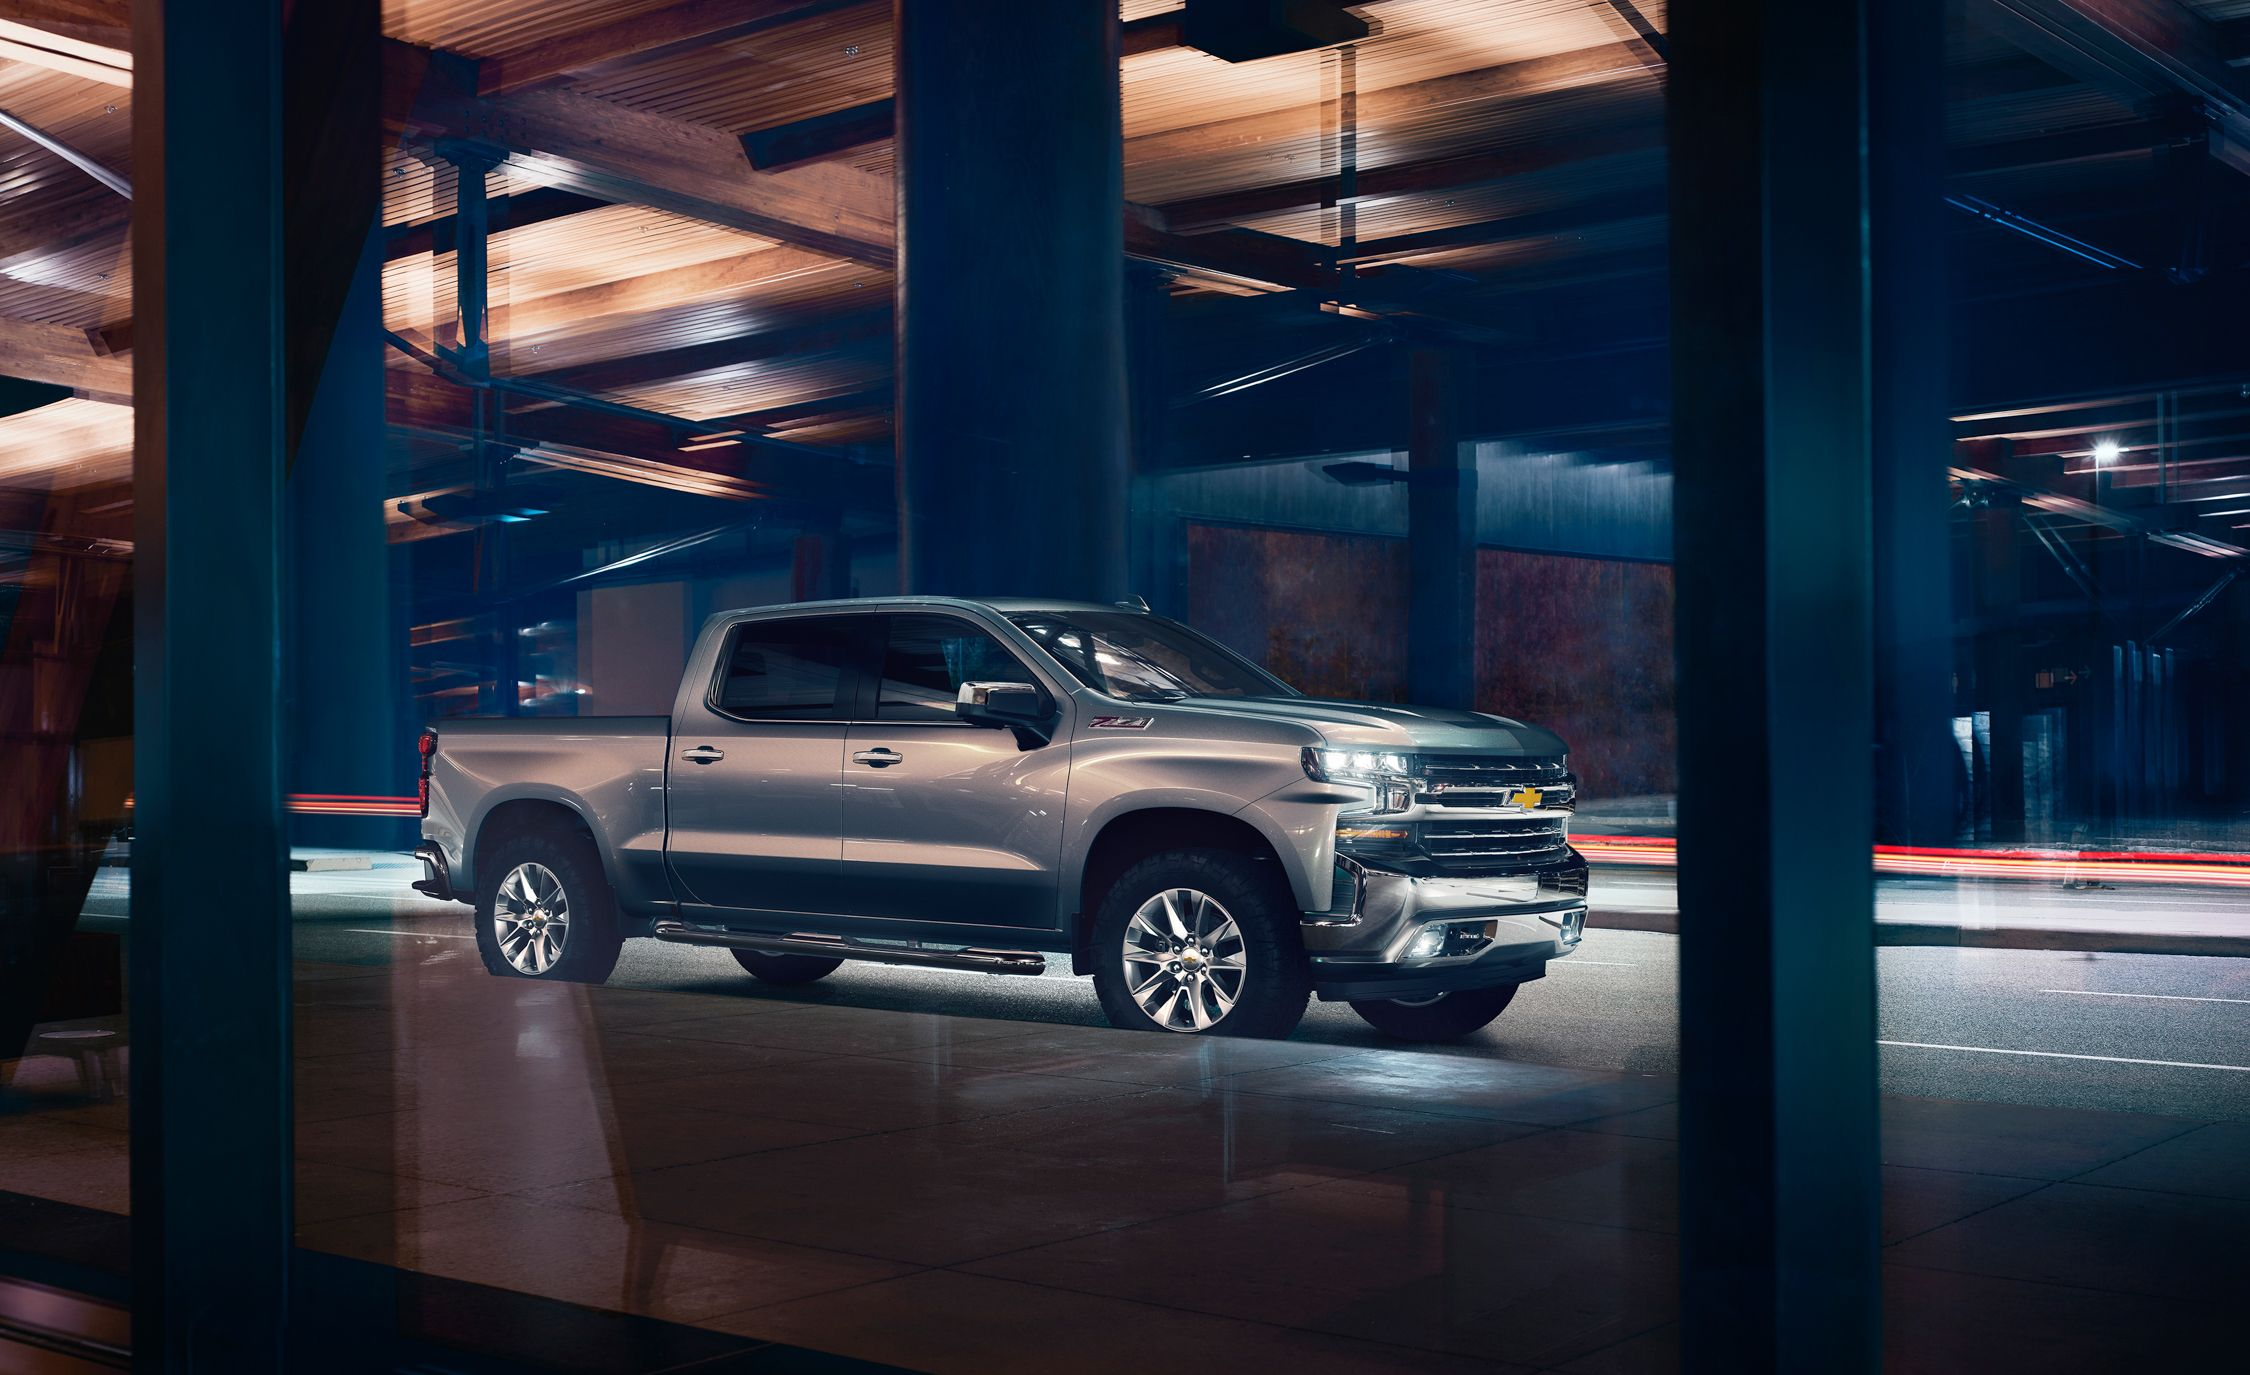 2019 Chevrolet Silverado Priced: Some Models Are Higher, Some Lower